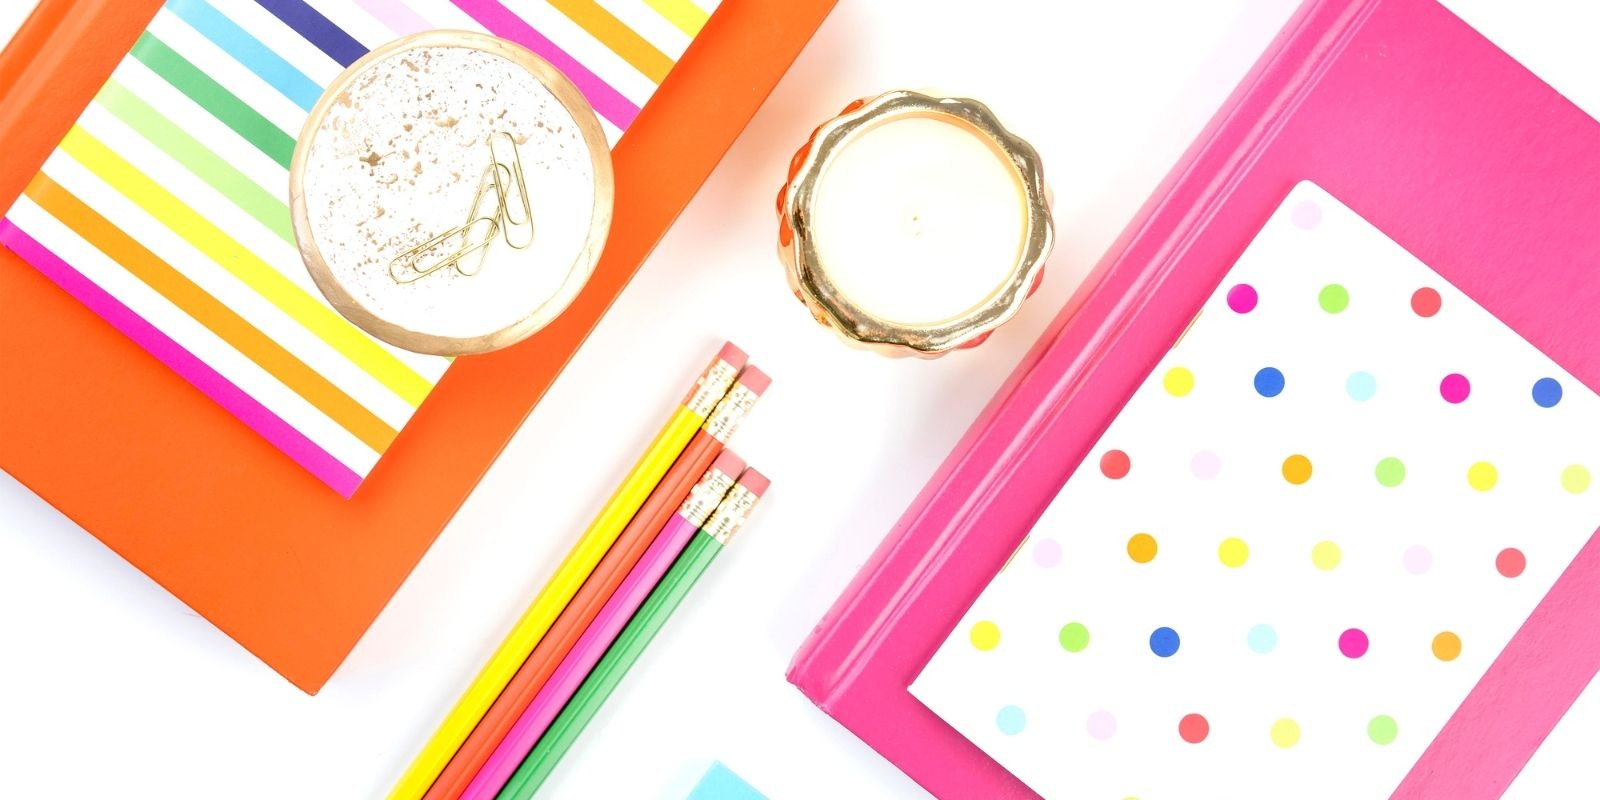 Colorful desktop accessories on a white background